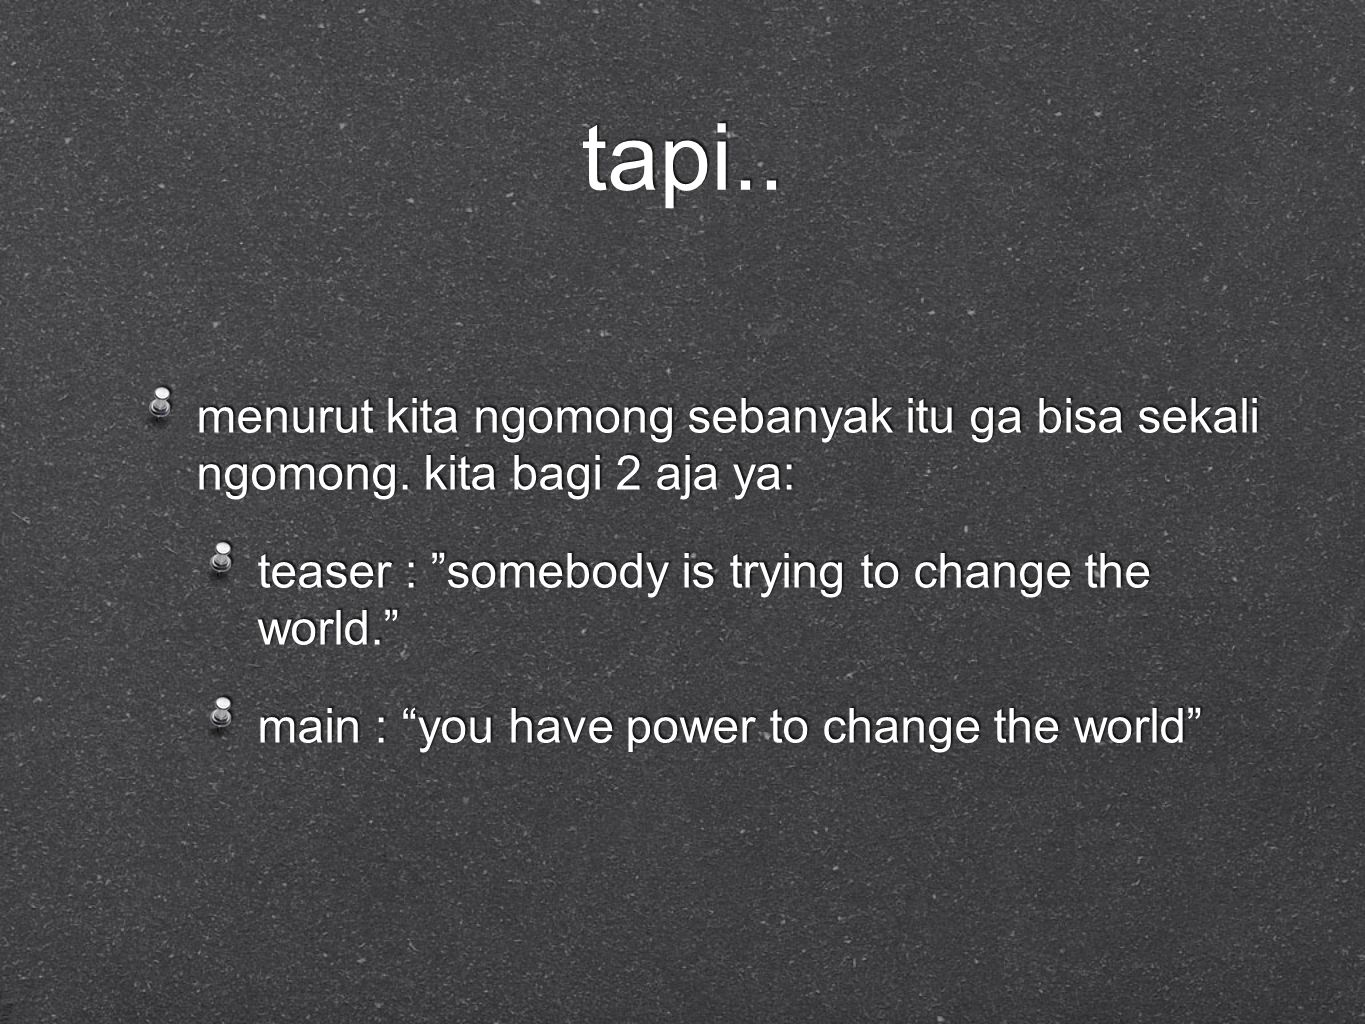 "tapi.. menurut kita ngomong sebanyak itu ga bisa sekali ngomong. kita bagi 2 aja ya: teaser : ""somebody is trying to change the world."" main : ""you ha"